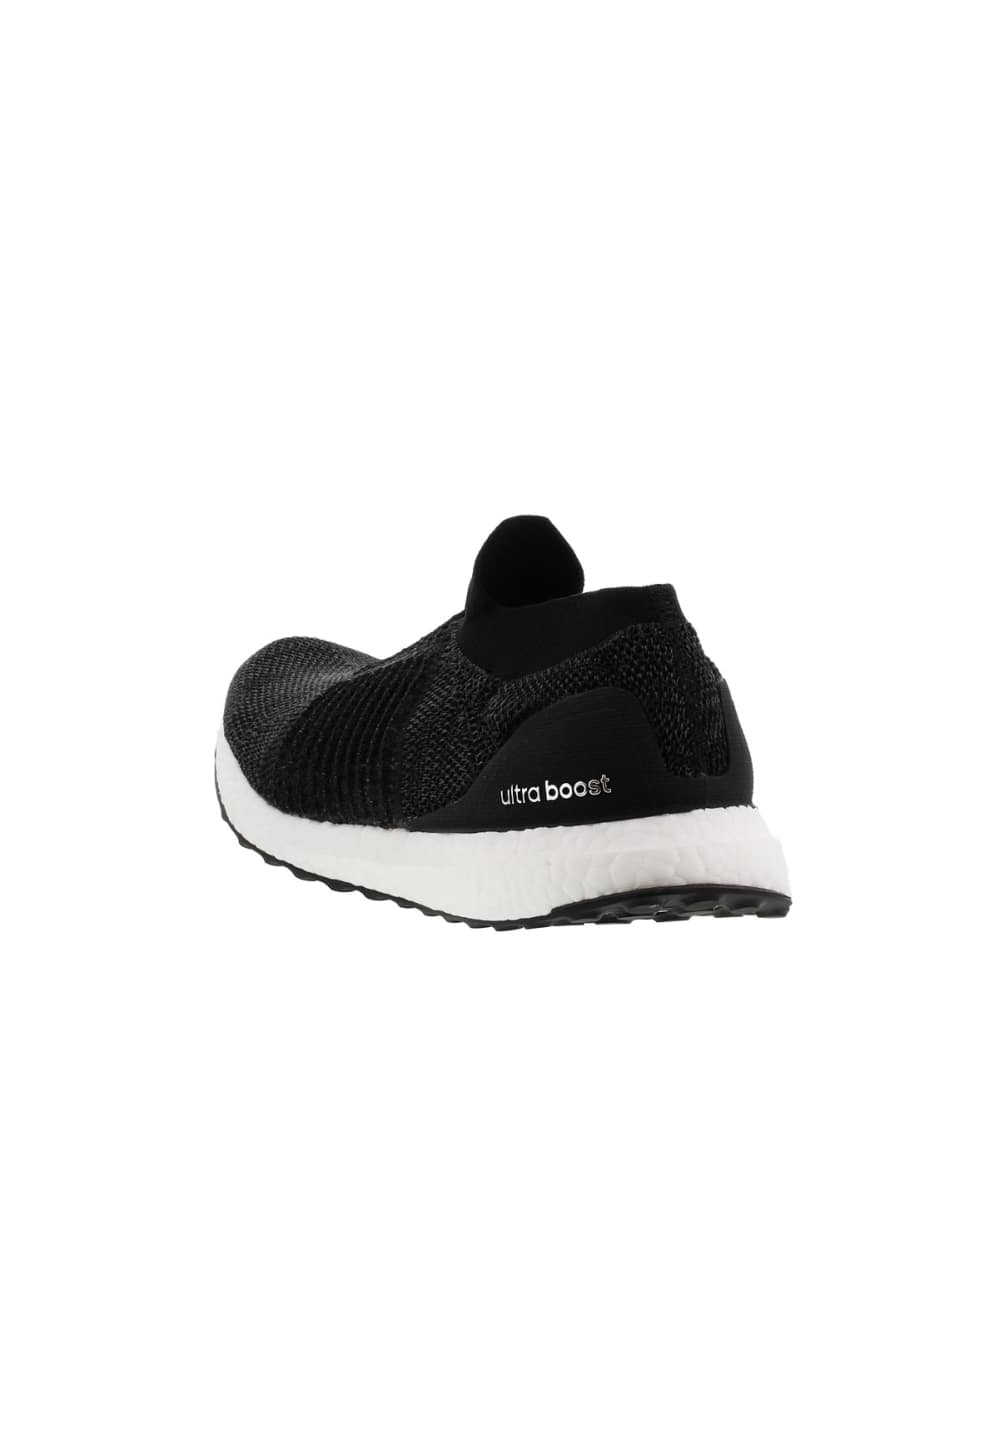 6dc2a52bf Next. adidas. Ultra Boost Laceless - Running shoes for Women. €199.95.  incl. VAT, plus shipping costs